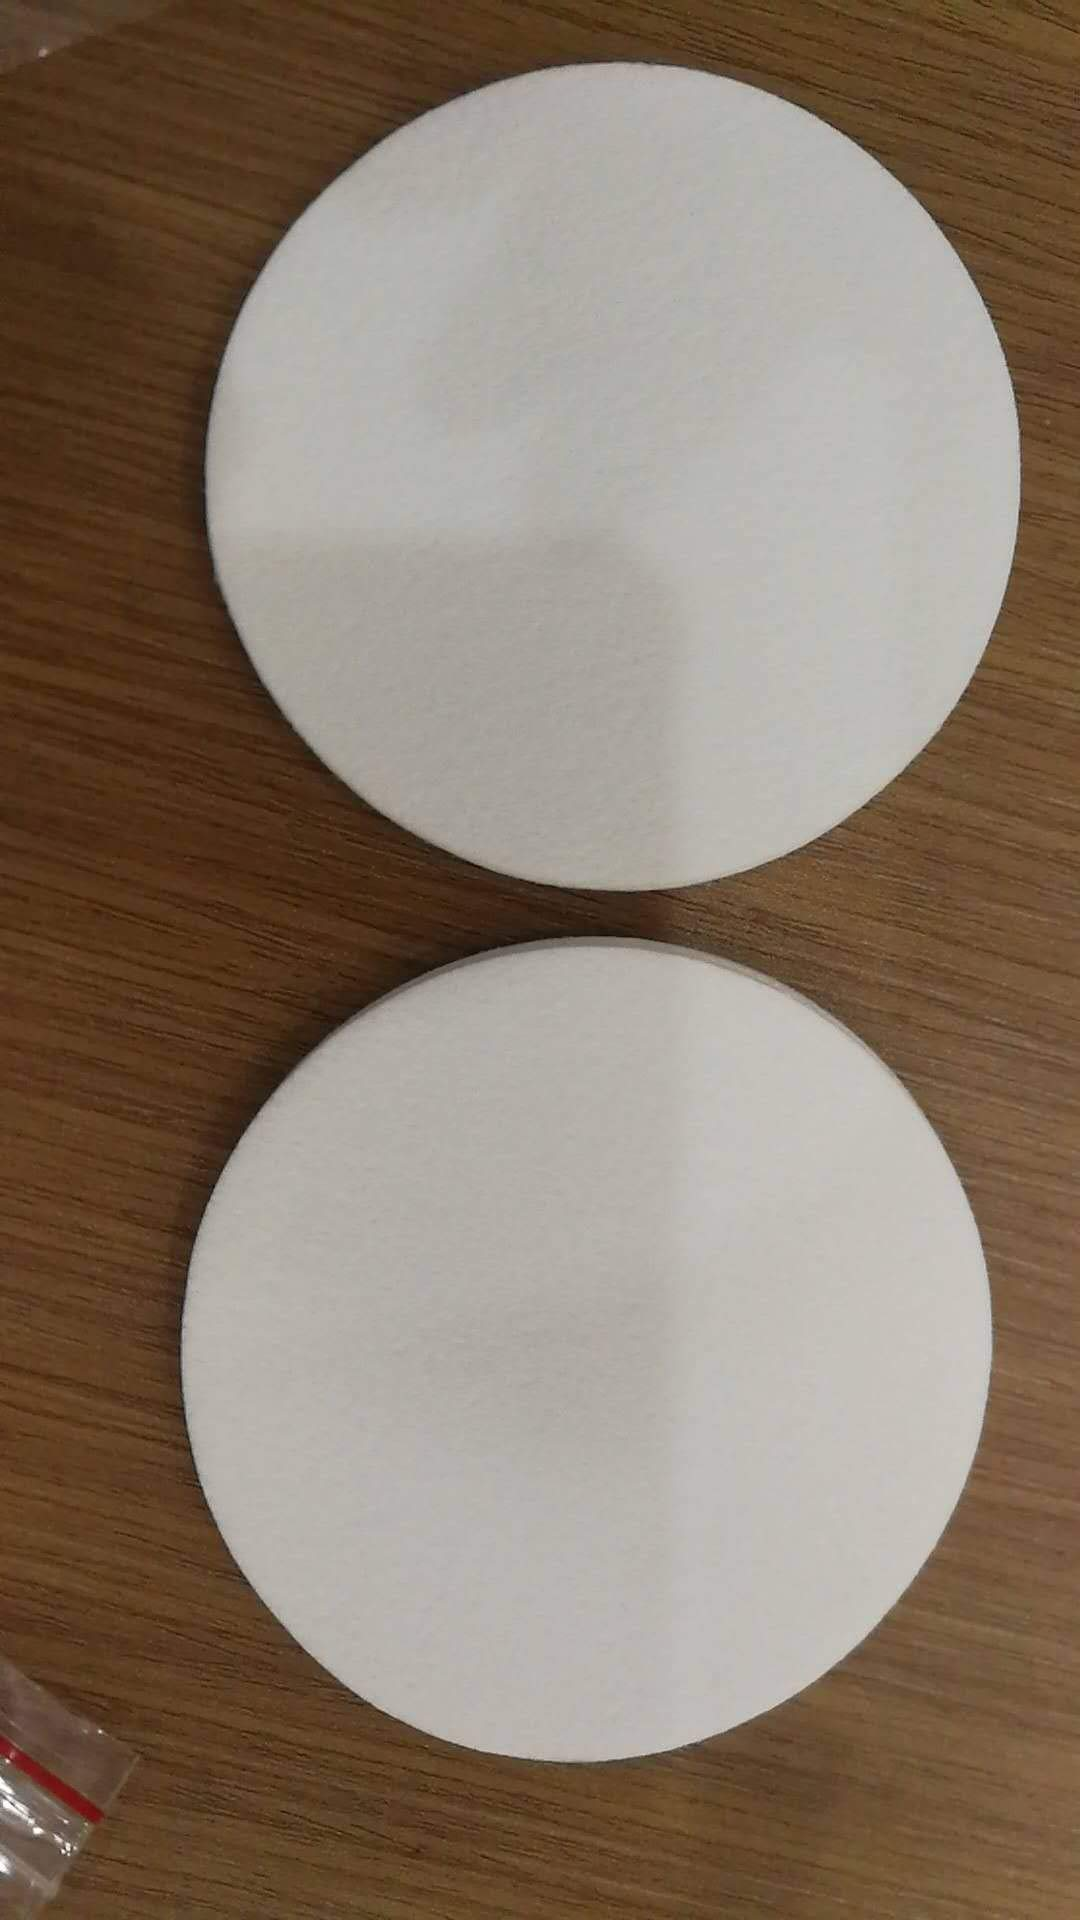 Synthetic Filter Discs 70mm for a Buchner Funnel and fit''Regular Mouth'' Size Used for Mushroom Cultivation (12) by Amazing-us